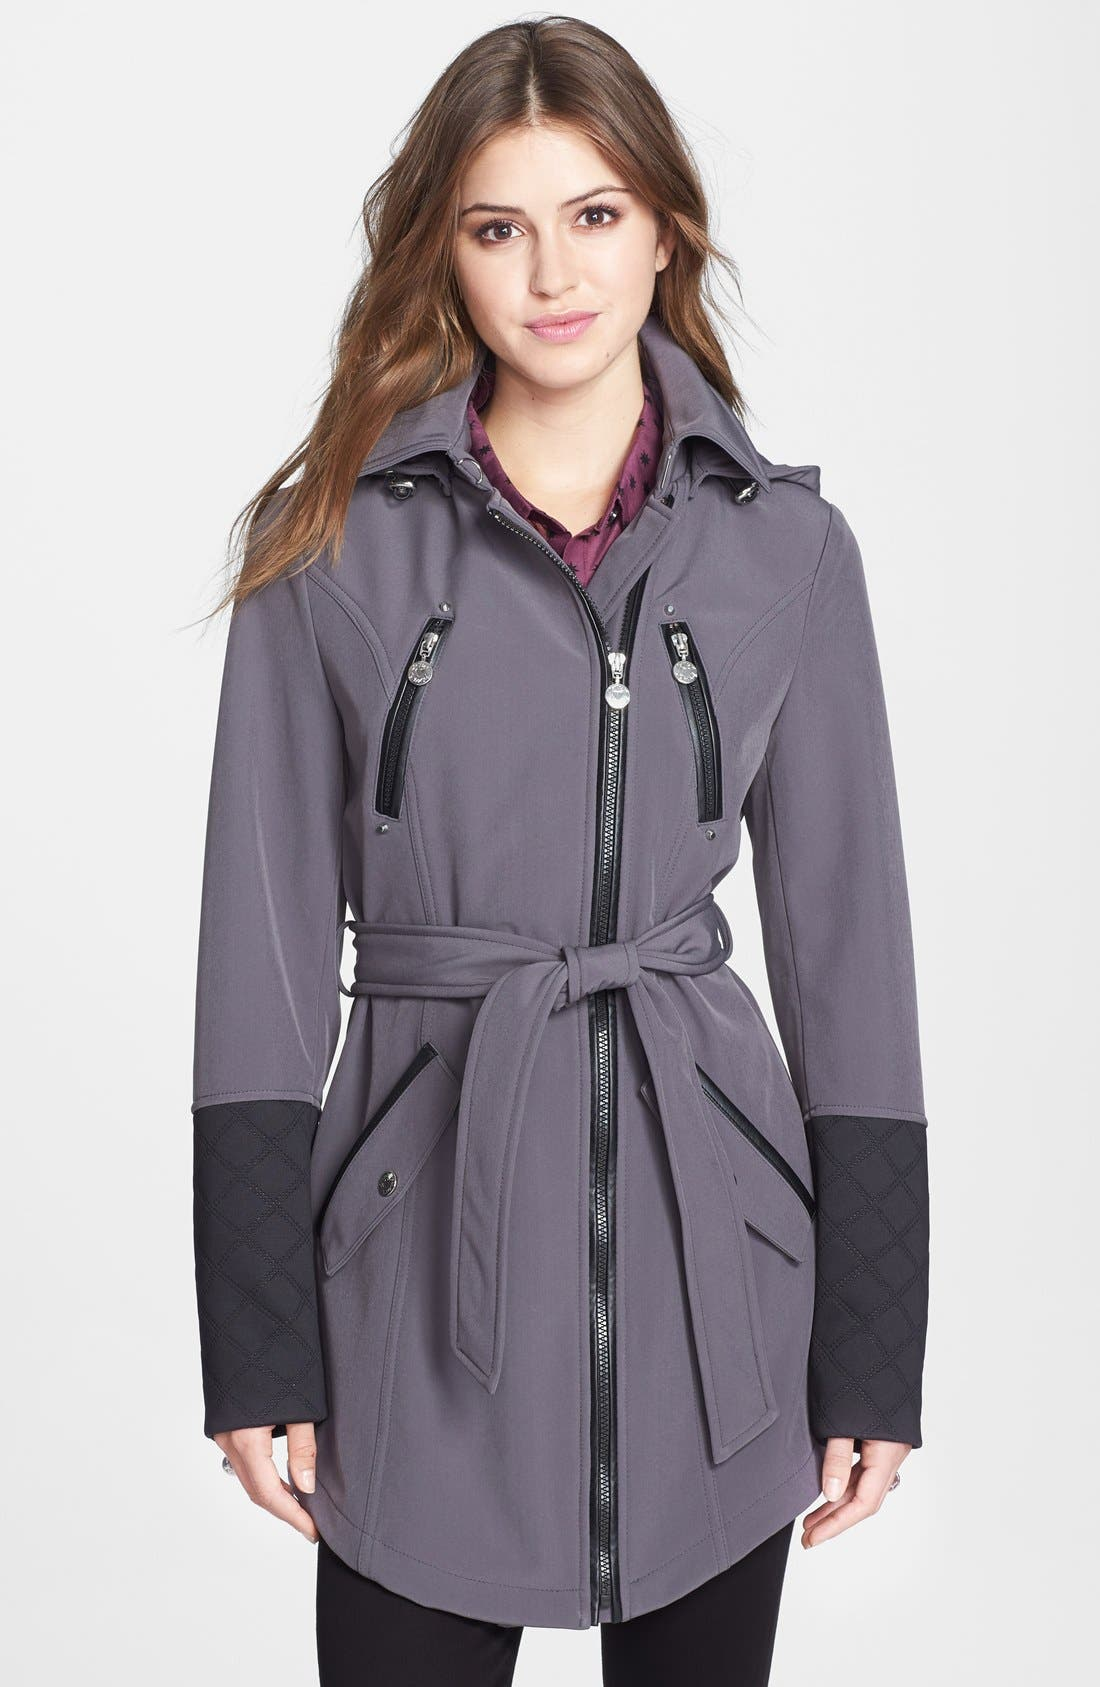 Main Image - Betsey Johnson Faux Leather Trim Soft Shell Jacket with Removable Hood (Online Only)